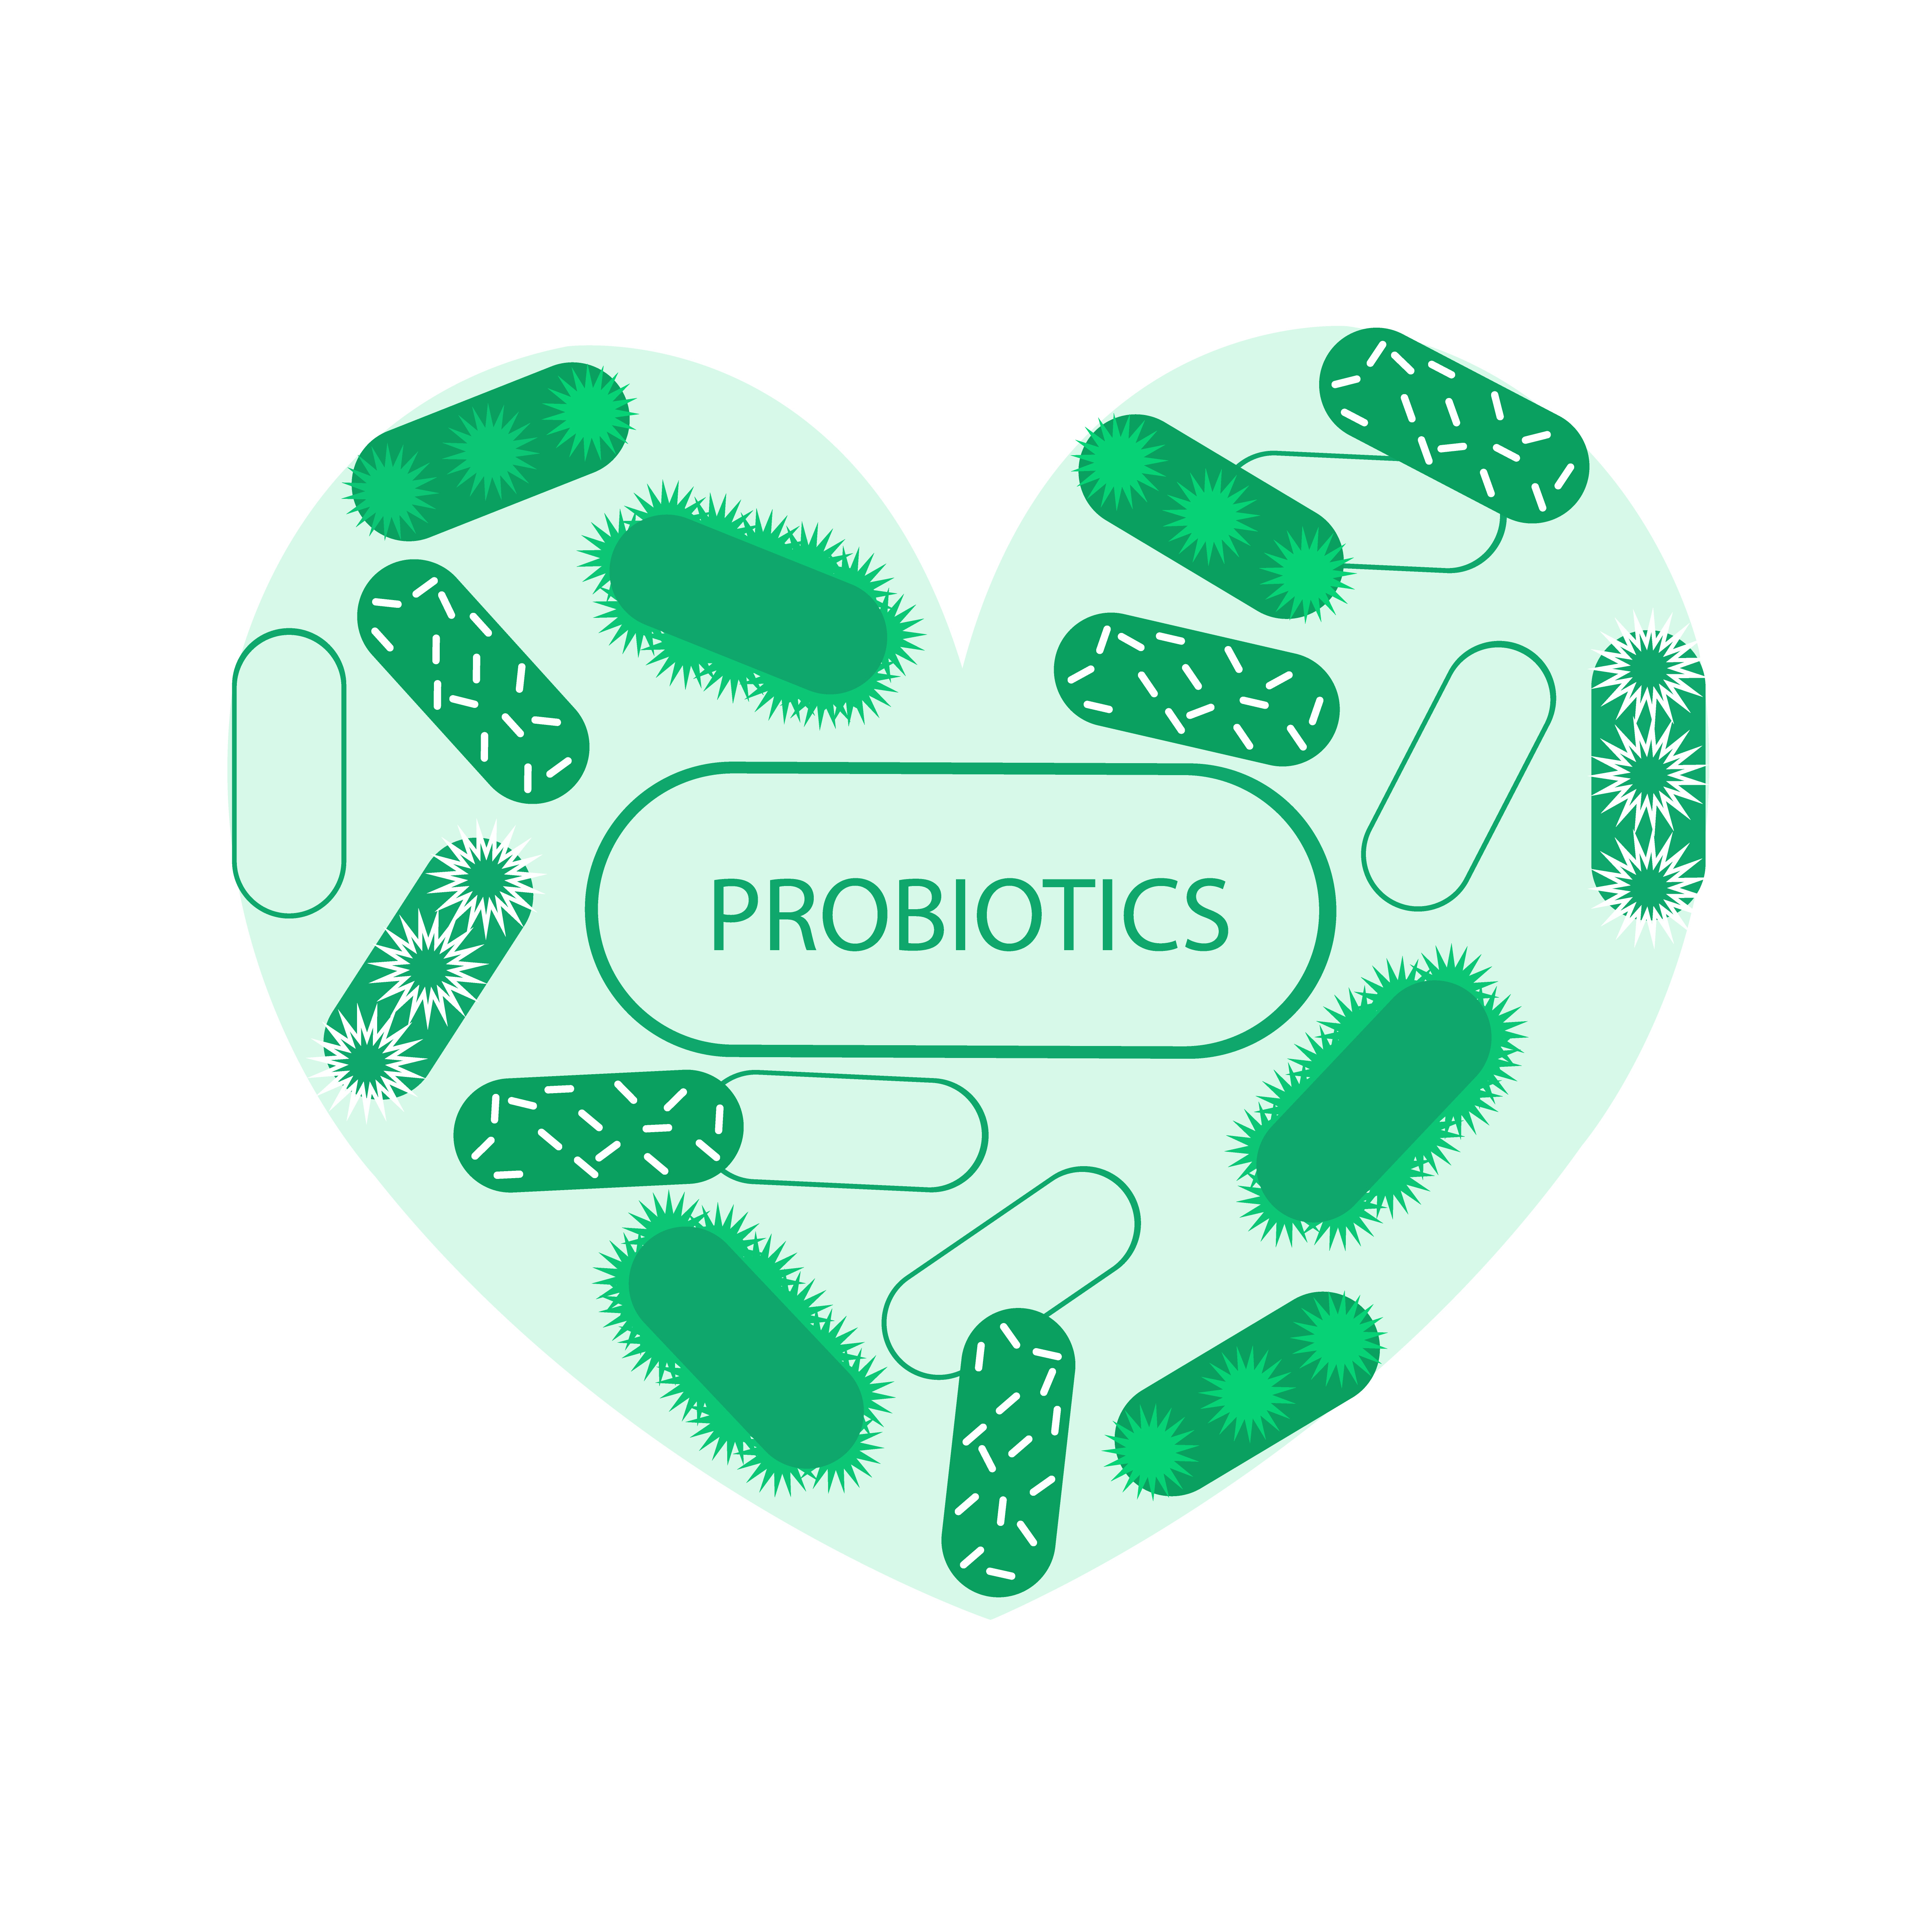 Made of Probiotic symbol heart and symbolic medical illustration of the intestinal bacterial flora